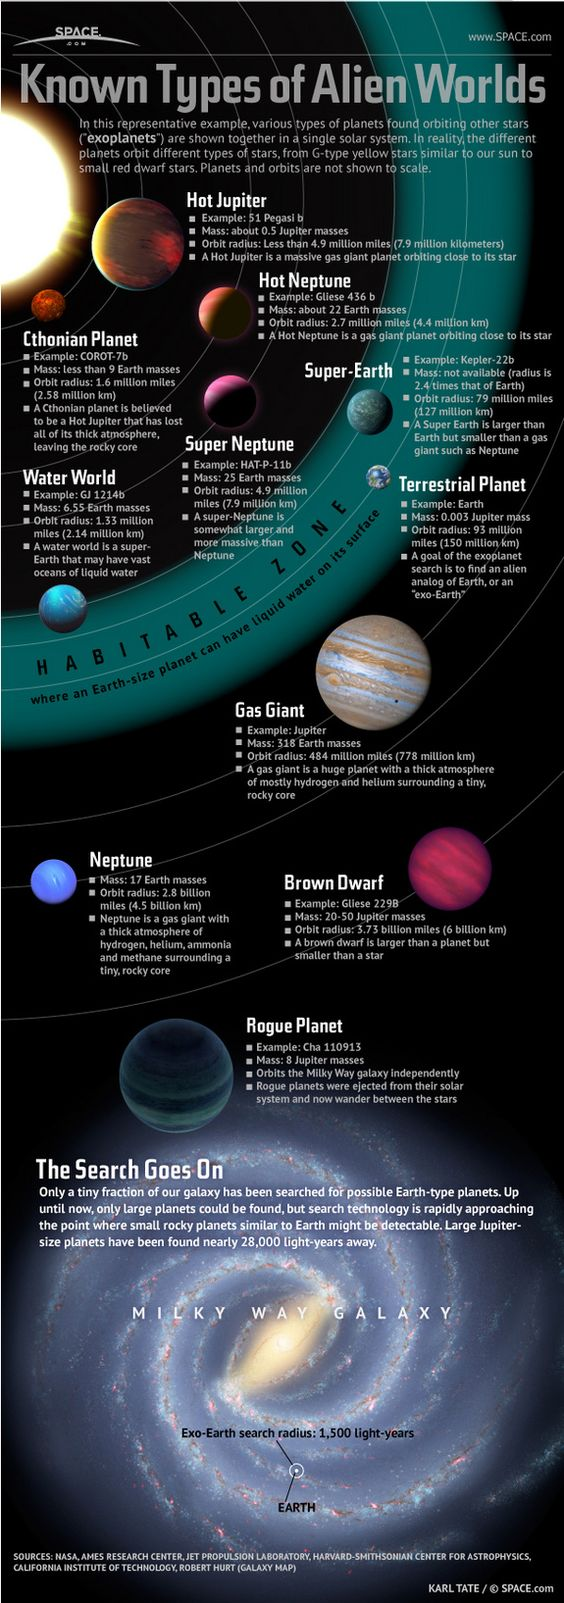 Scientists have only searched through a tiny fraction of our galaxy, and with the fast advances in technology, we can expect many more interesting discoveries in the future.     But for now, check out the handy infographic below, courtesy of Space.com, displaying all known types of alien worlds.: